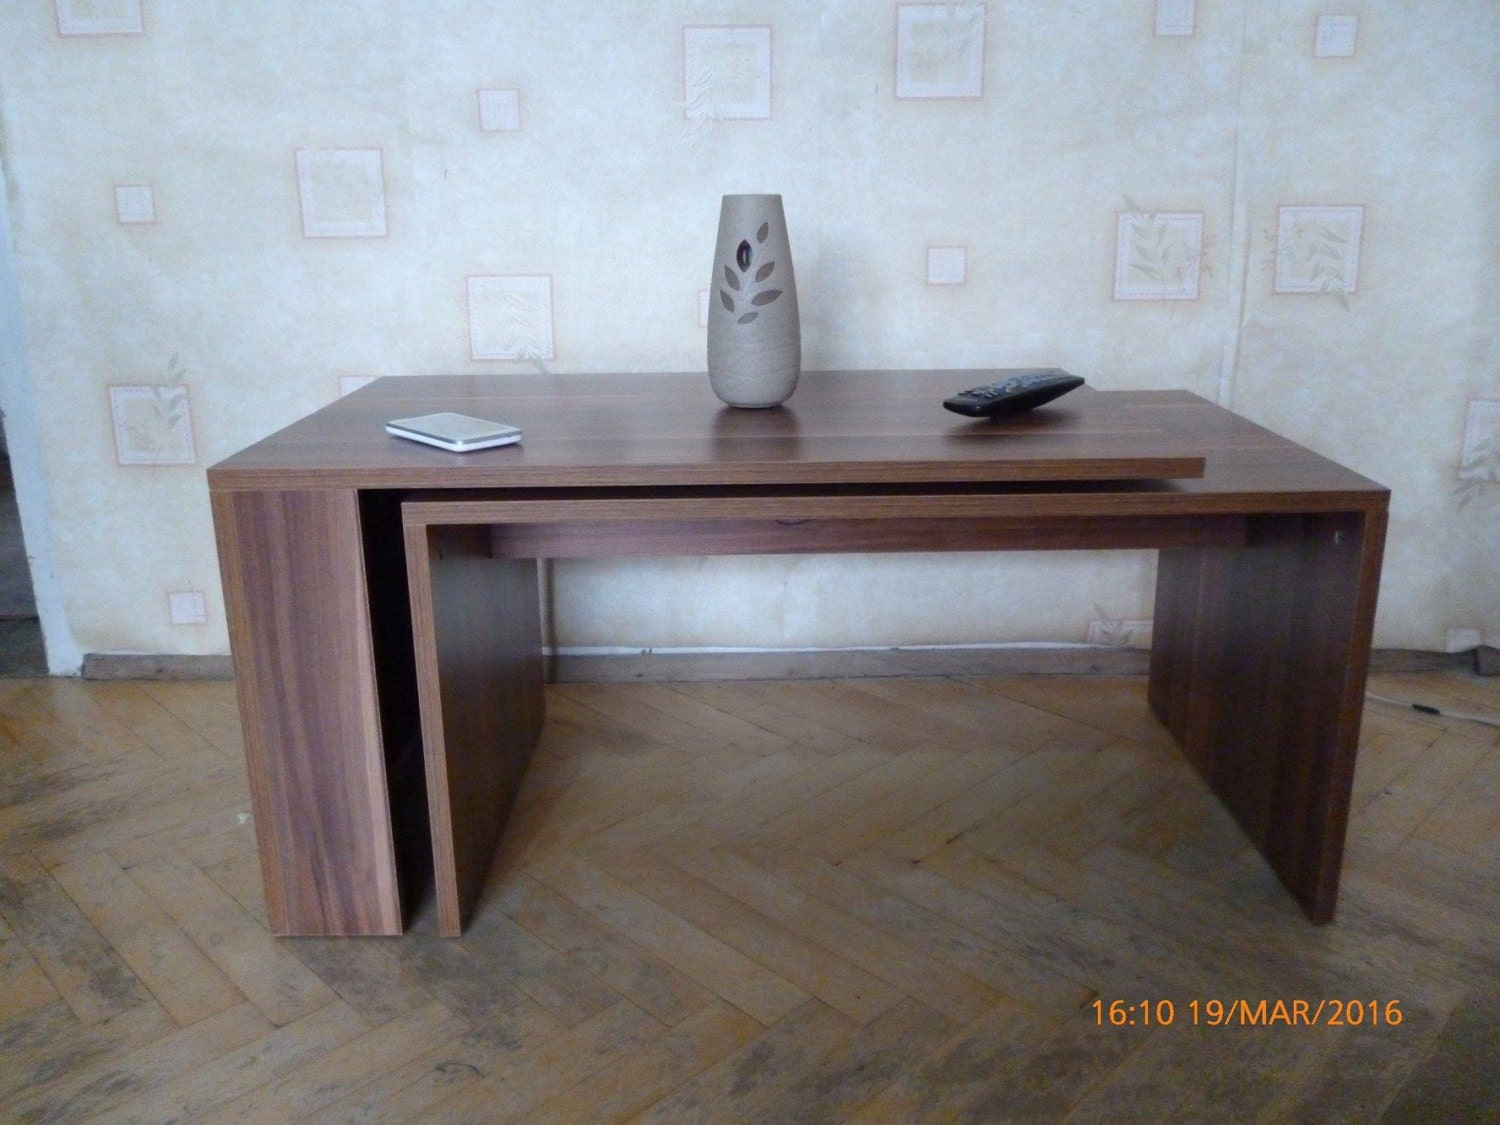 dynamic table multifunctional coffee table living room